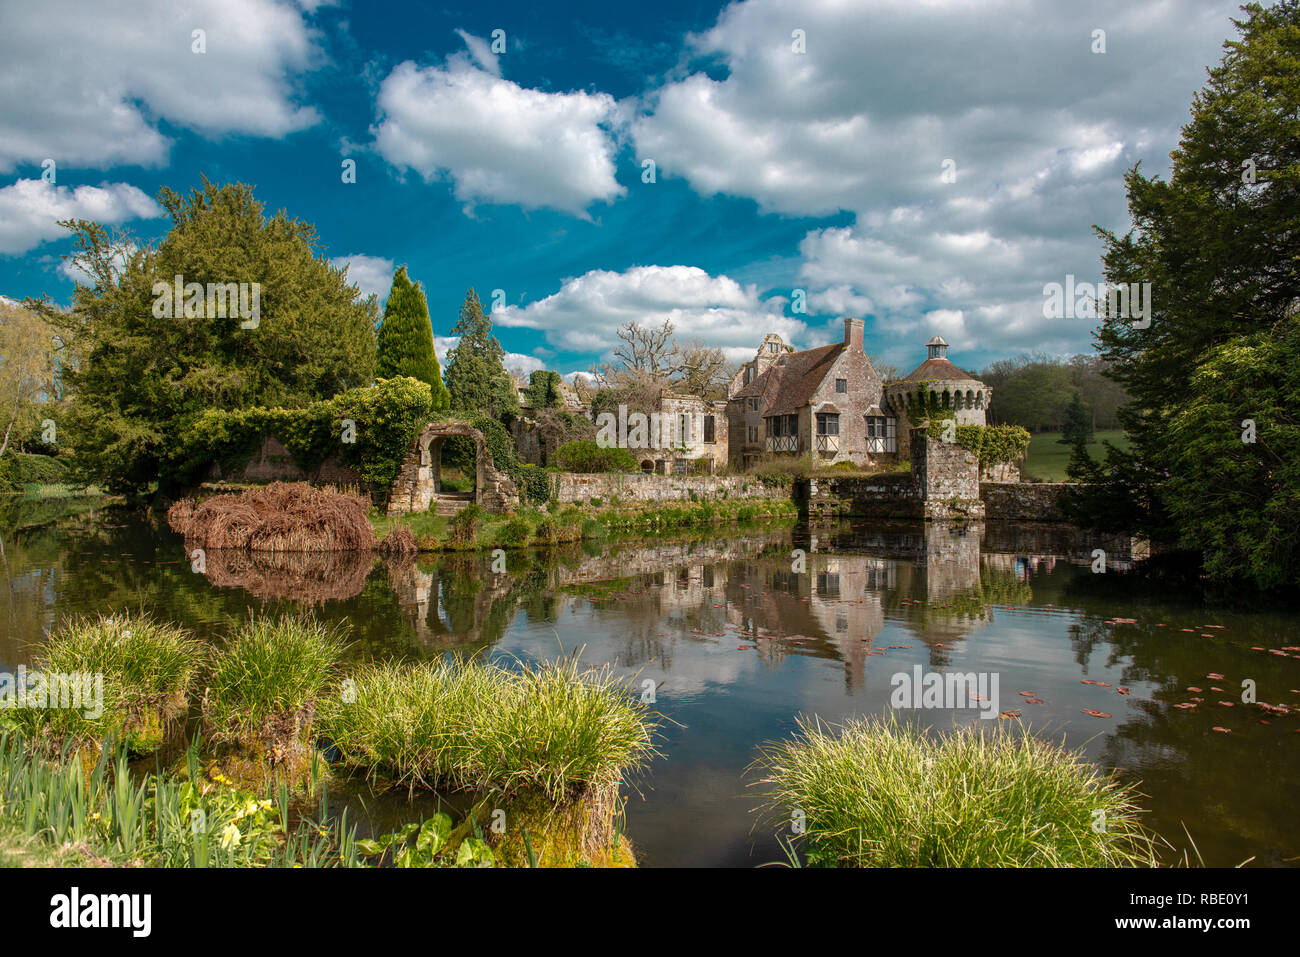 Scotney Old Castle - Stock Image